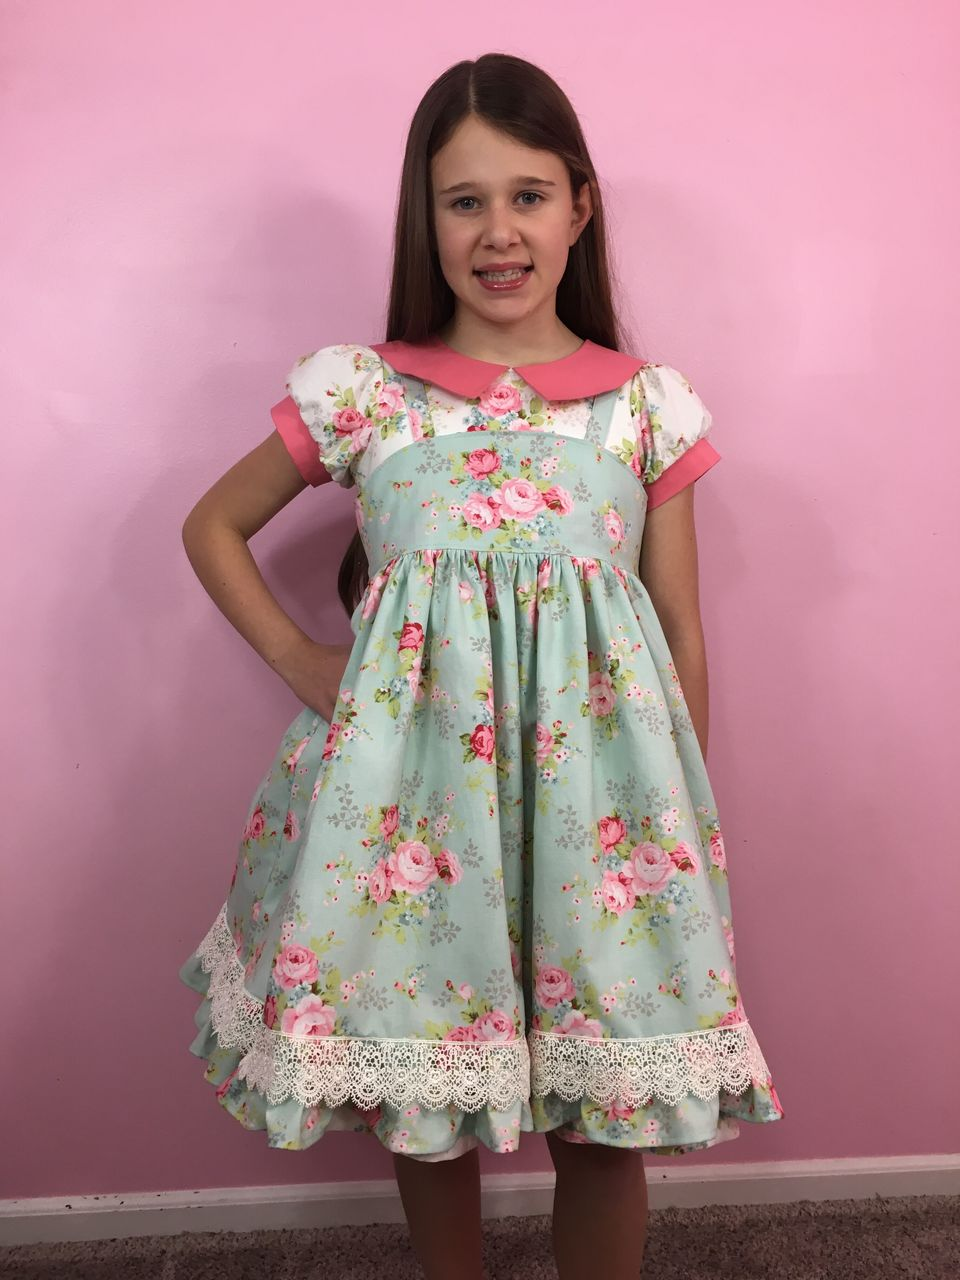 Marlowe's Vintage Dress and Pinafore Sizes NB to 14 Kids PDF Pattern